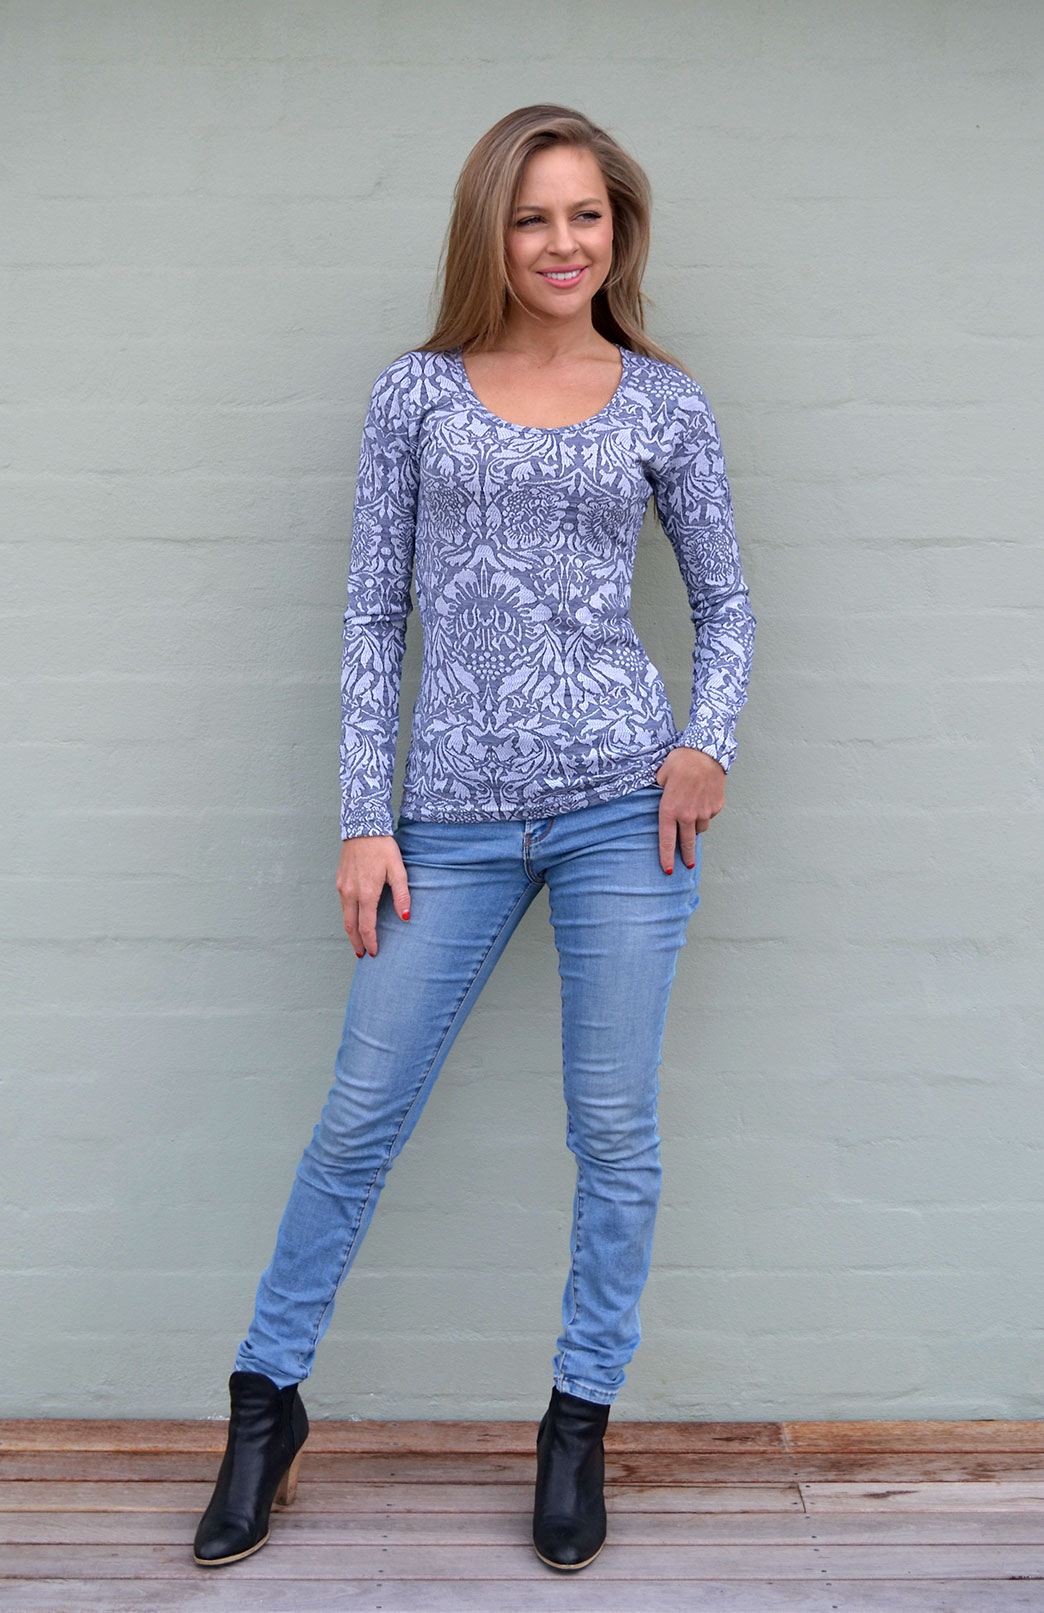 Scoop Neck Top - Patterned - Women's Blue and Grey Floral Merino Wool Long Sleeved Thermal Top with Scoop Neckline - Smitten Merino Tasmania Australia